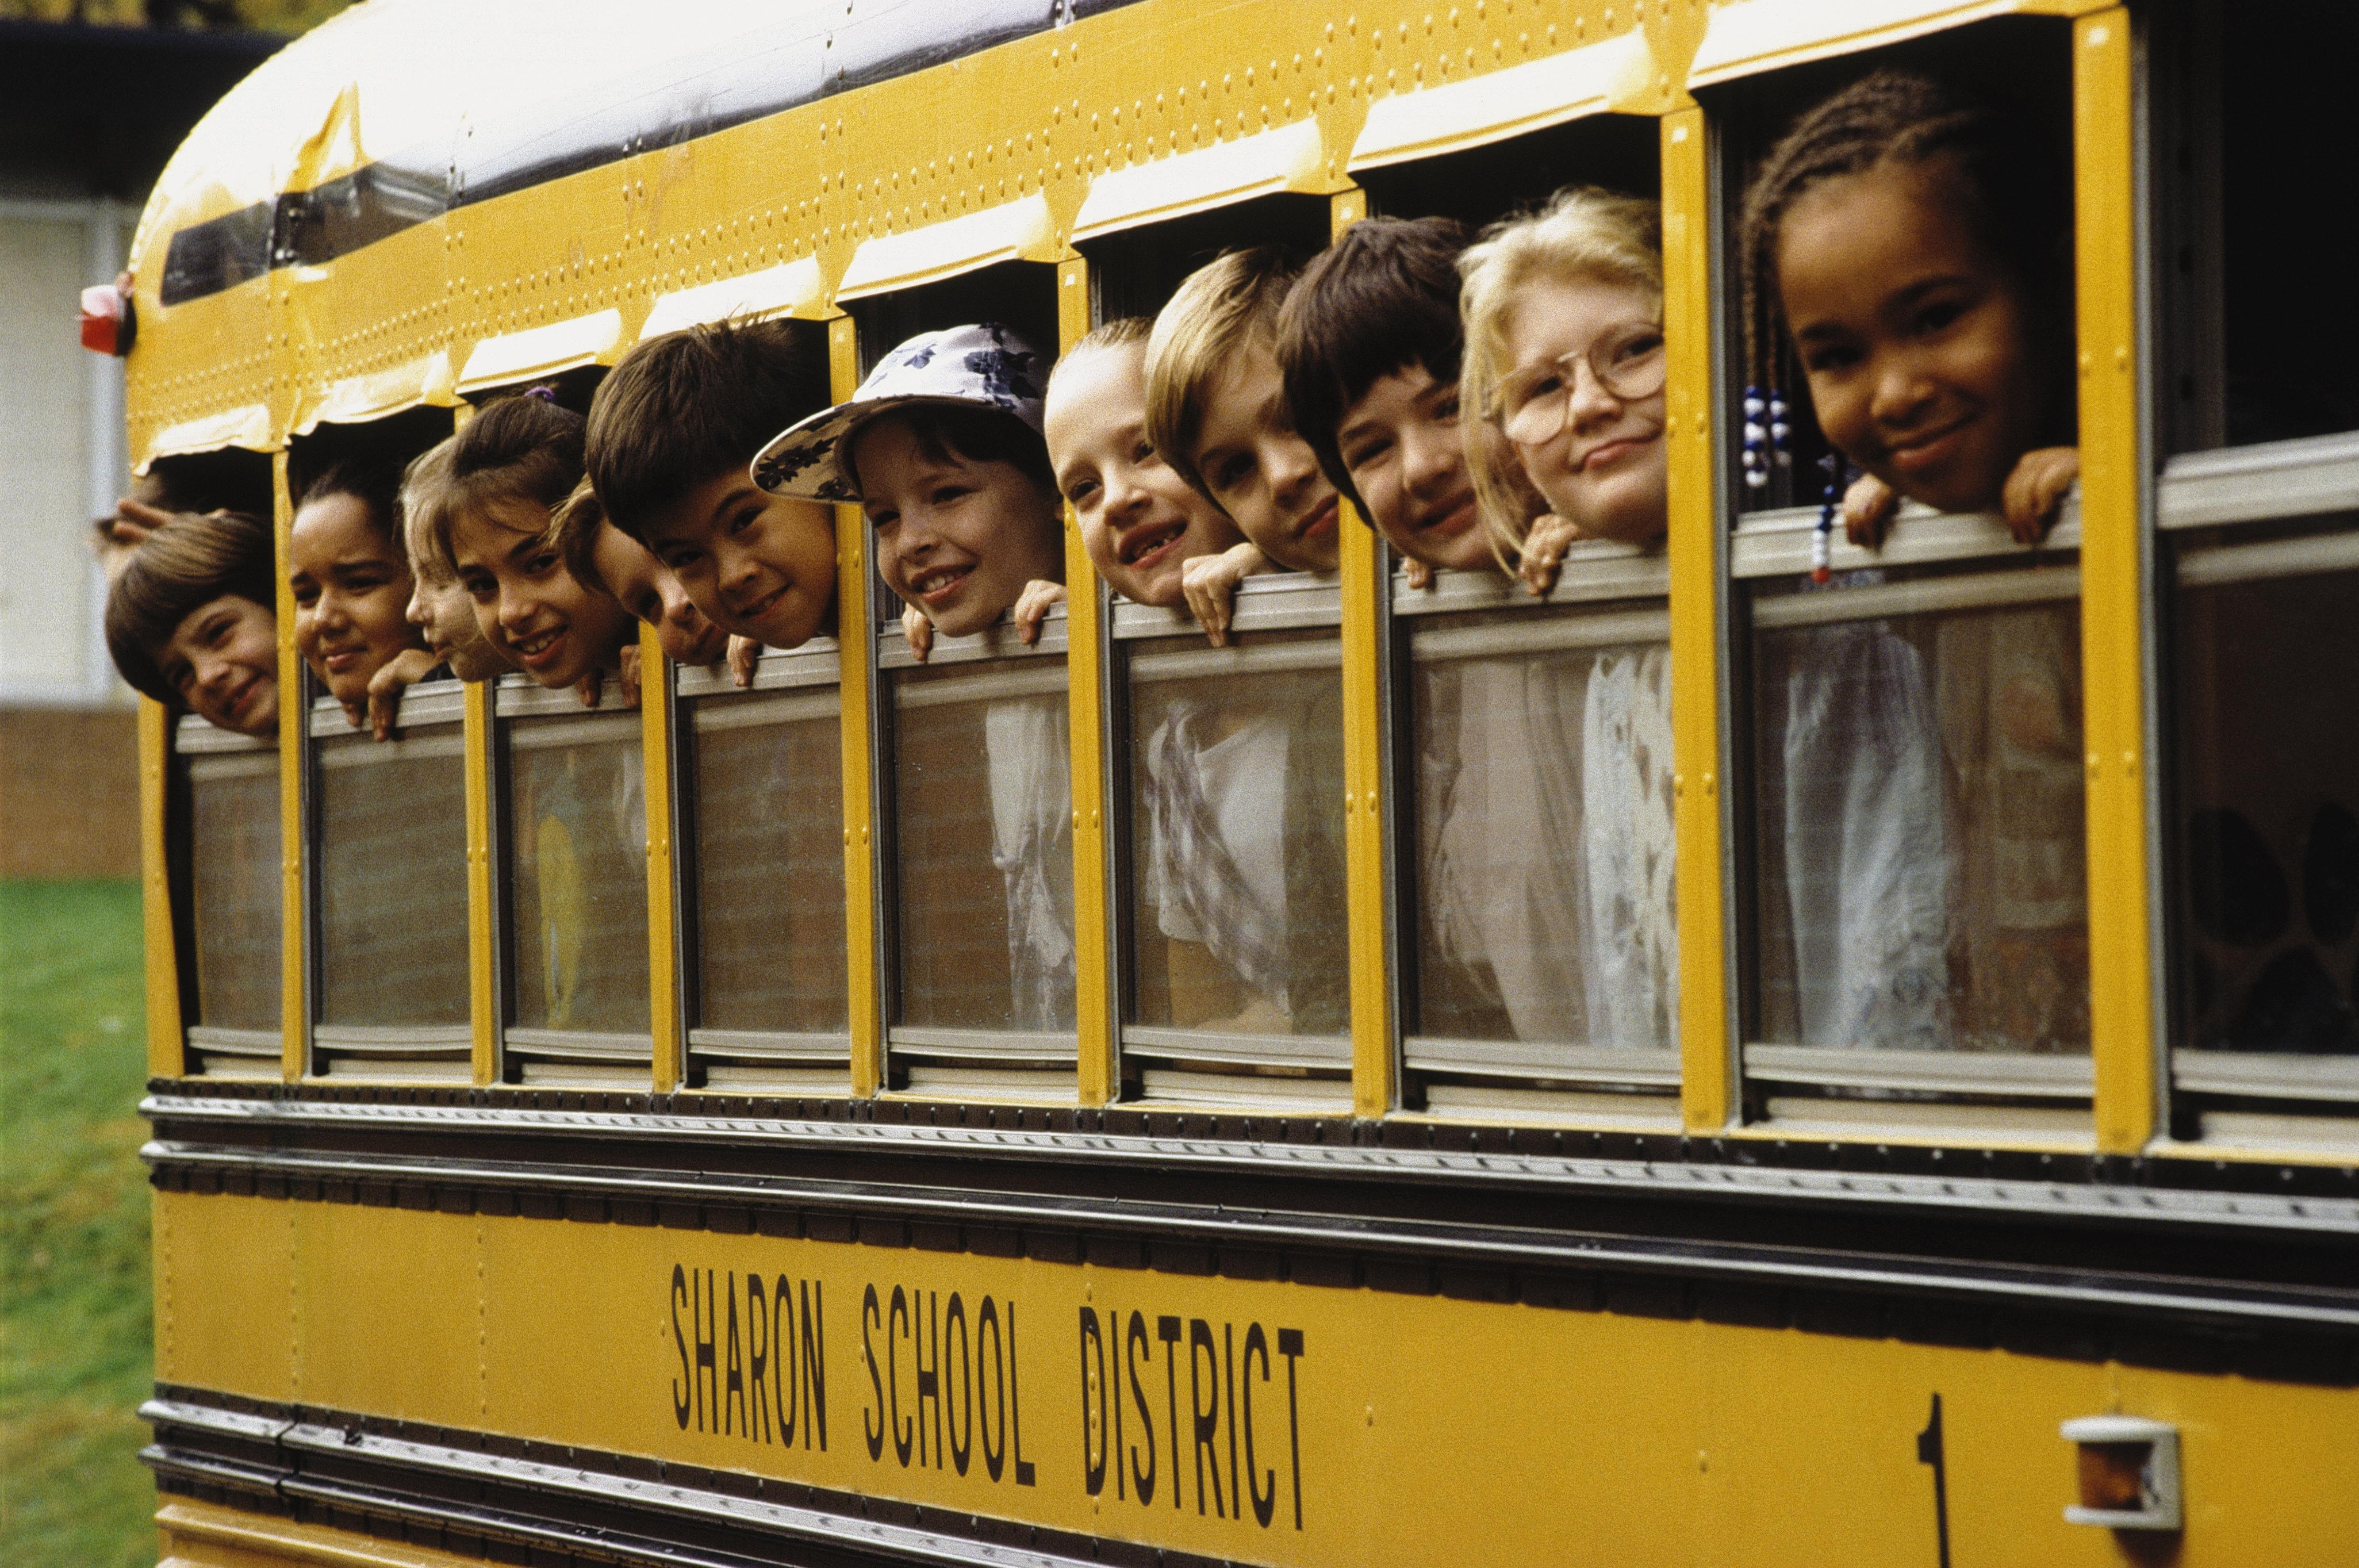 School children looking out school bus windows.